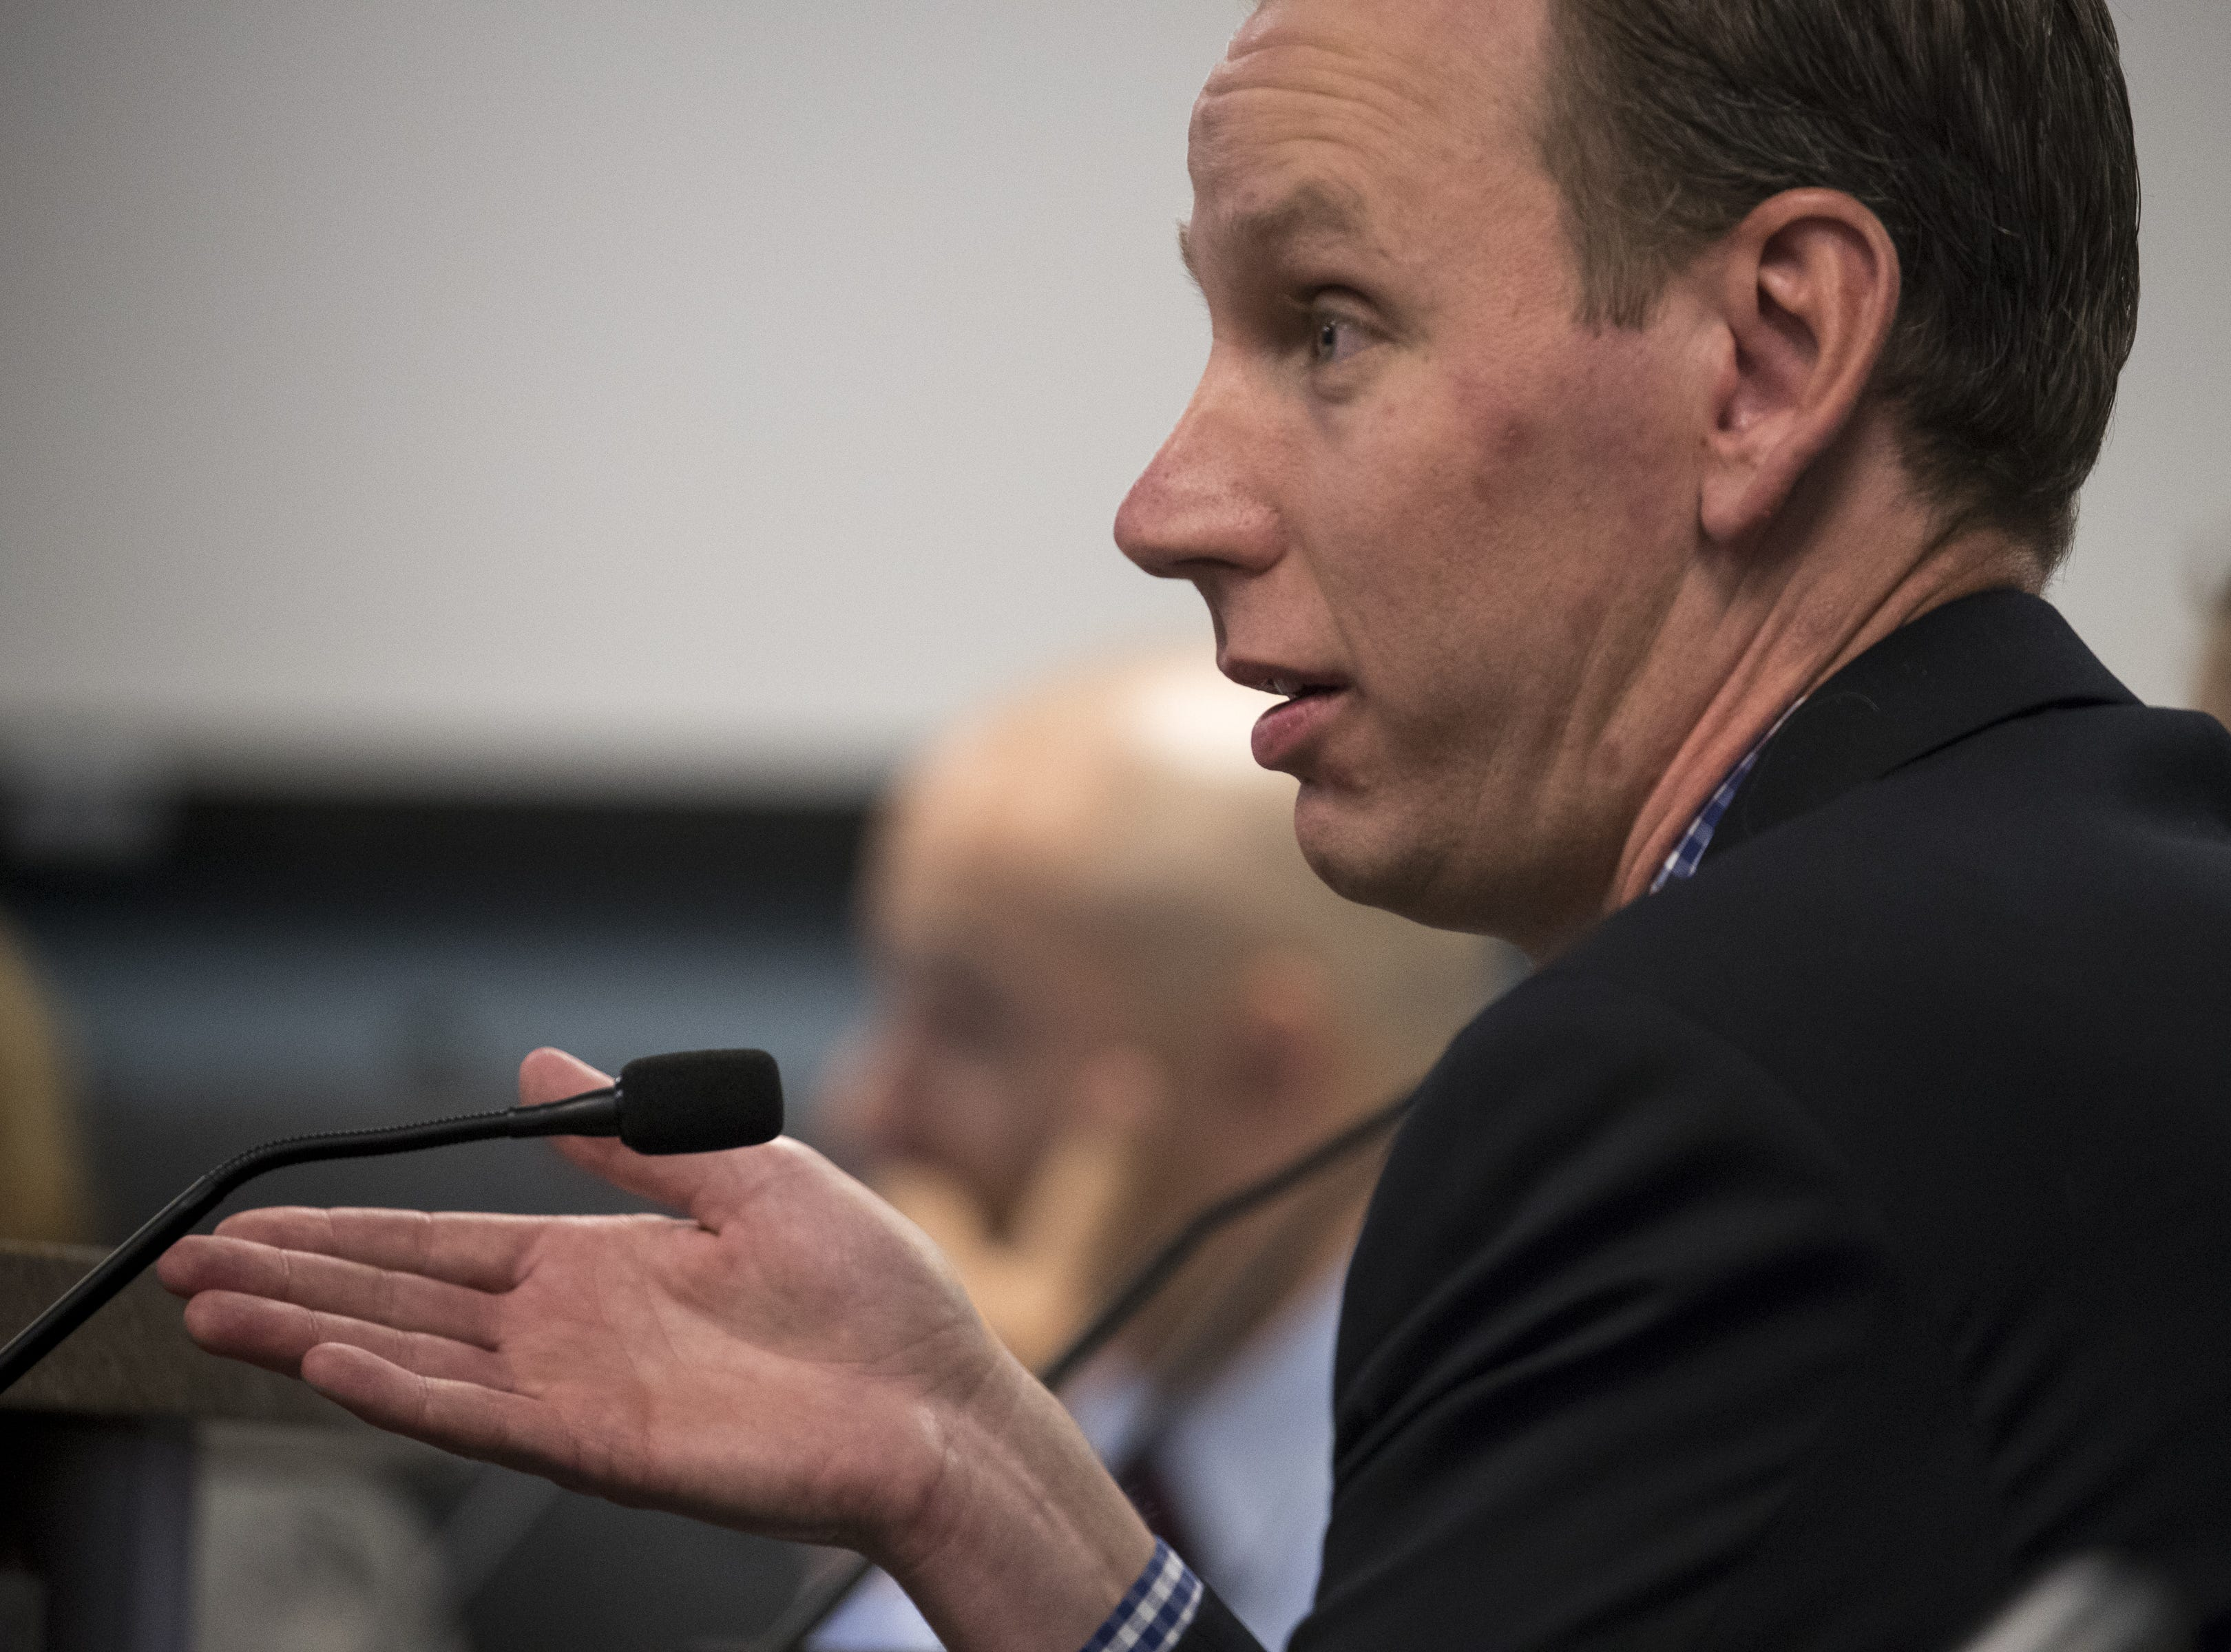 Matthew Mason, a business community member, asks a question during an Arizona State Board for Charter Schools meeting on Sept. 10, 2018, at the Arizona Department of Education in Phoenix.